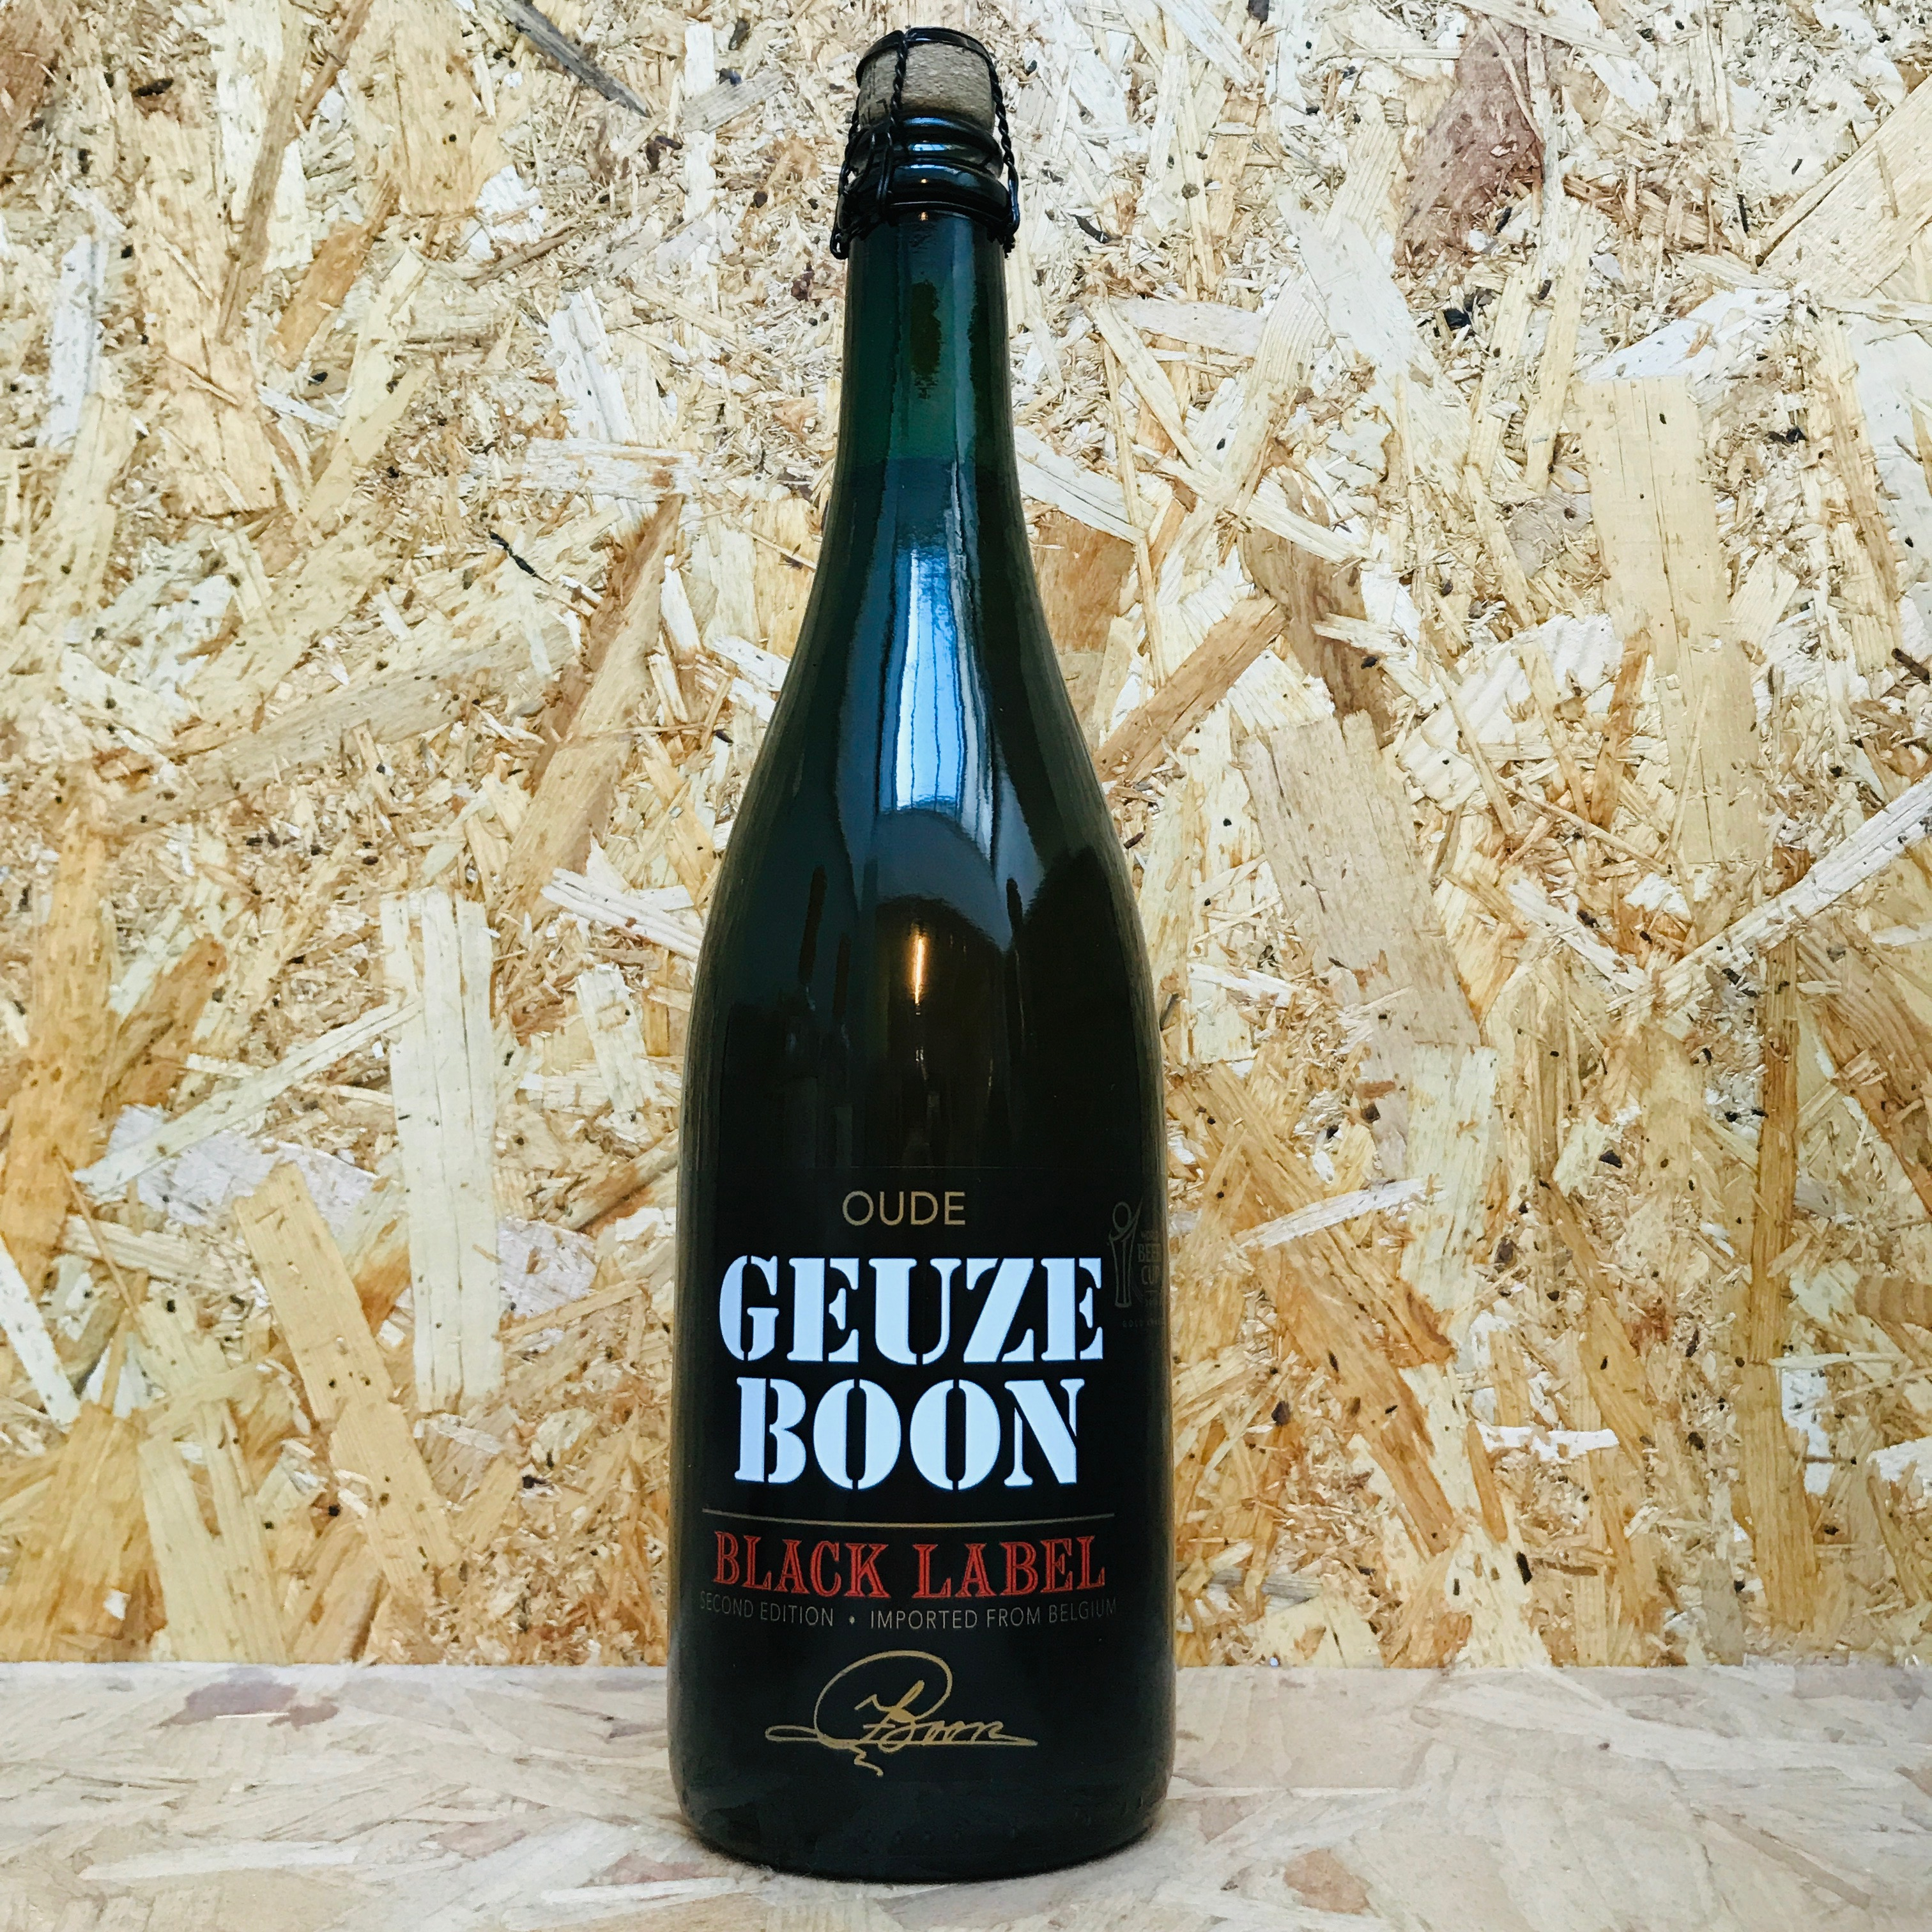 Boon Gueuze - Black Label